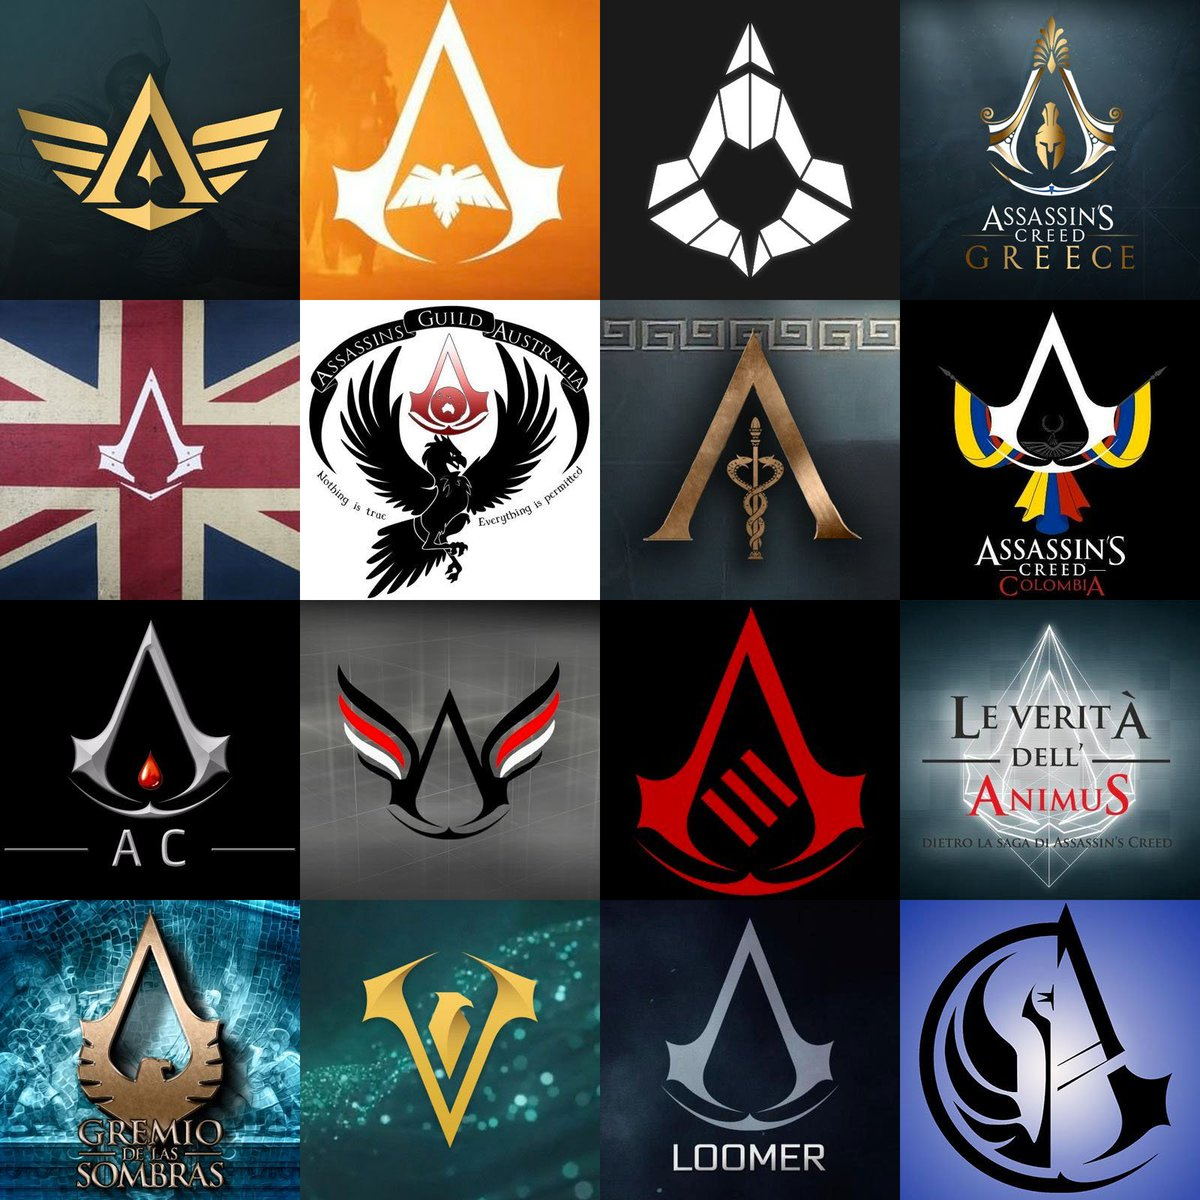 Mentors Guild On Twitter The Assassin Insignia Is A Timeless